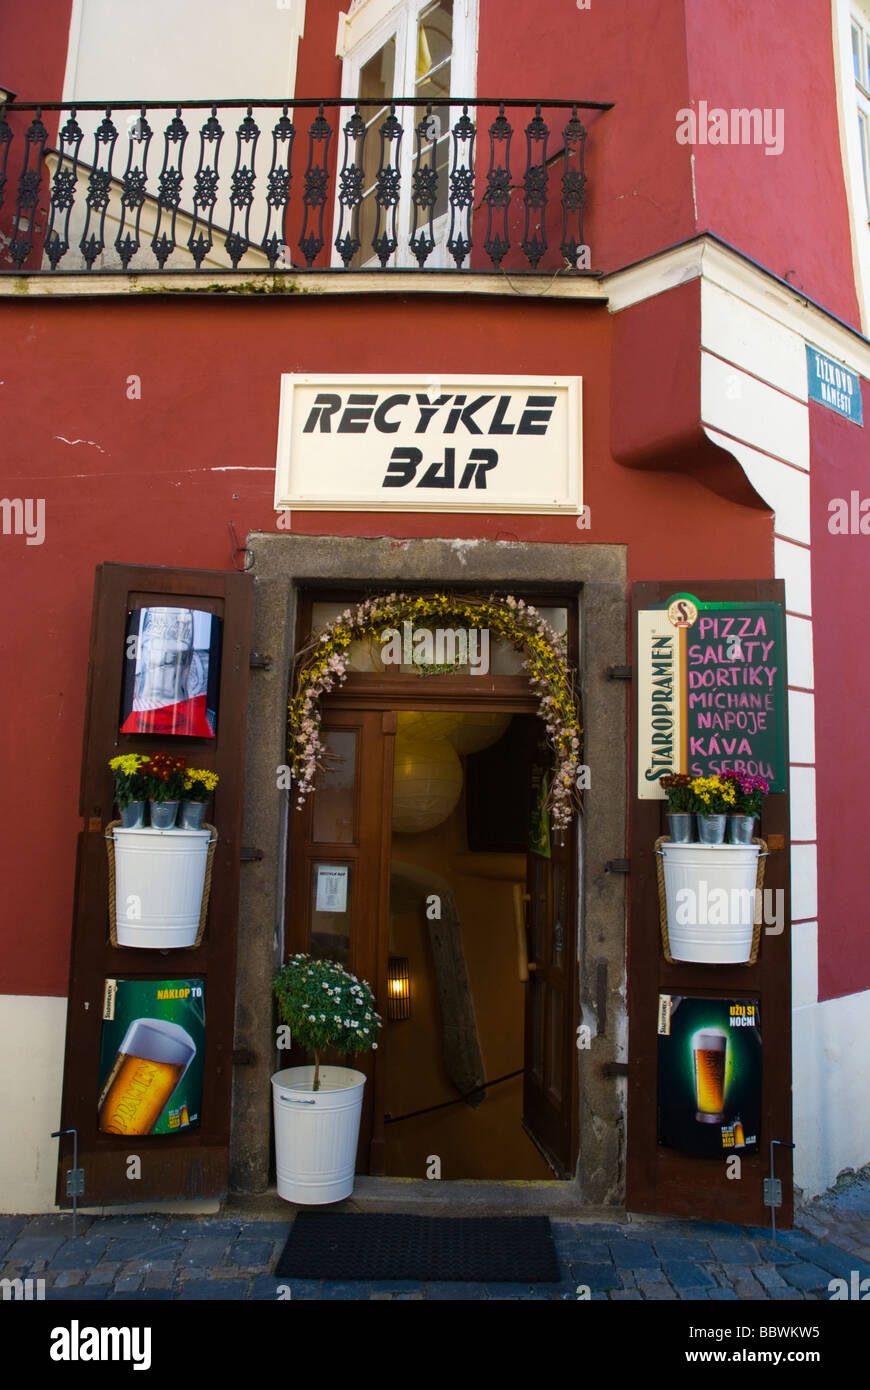 Recycle Bar in old town of Tabor Czech Republic Europe - Stock Image